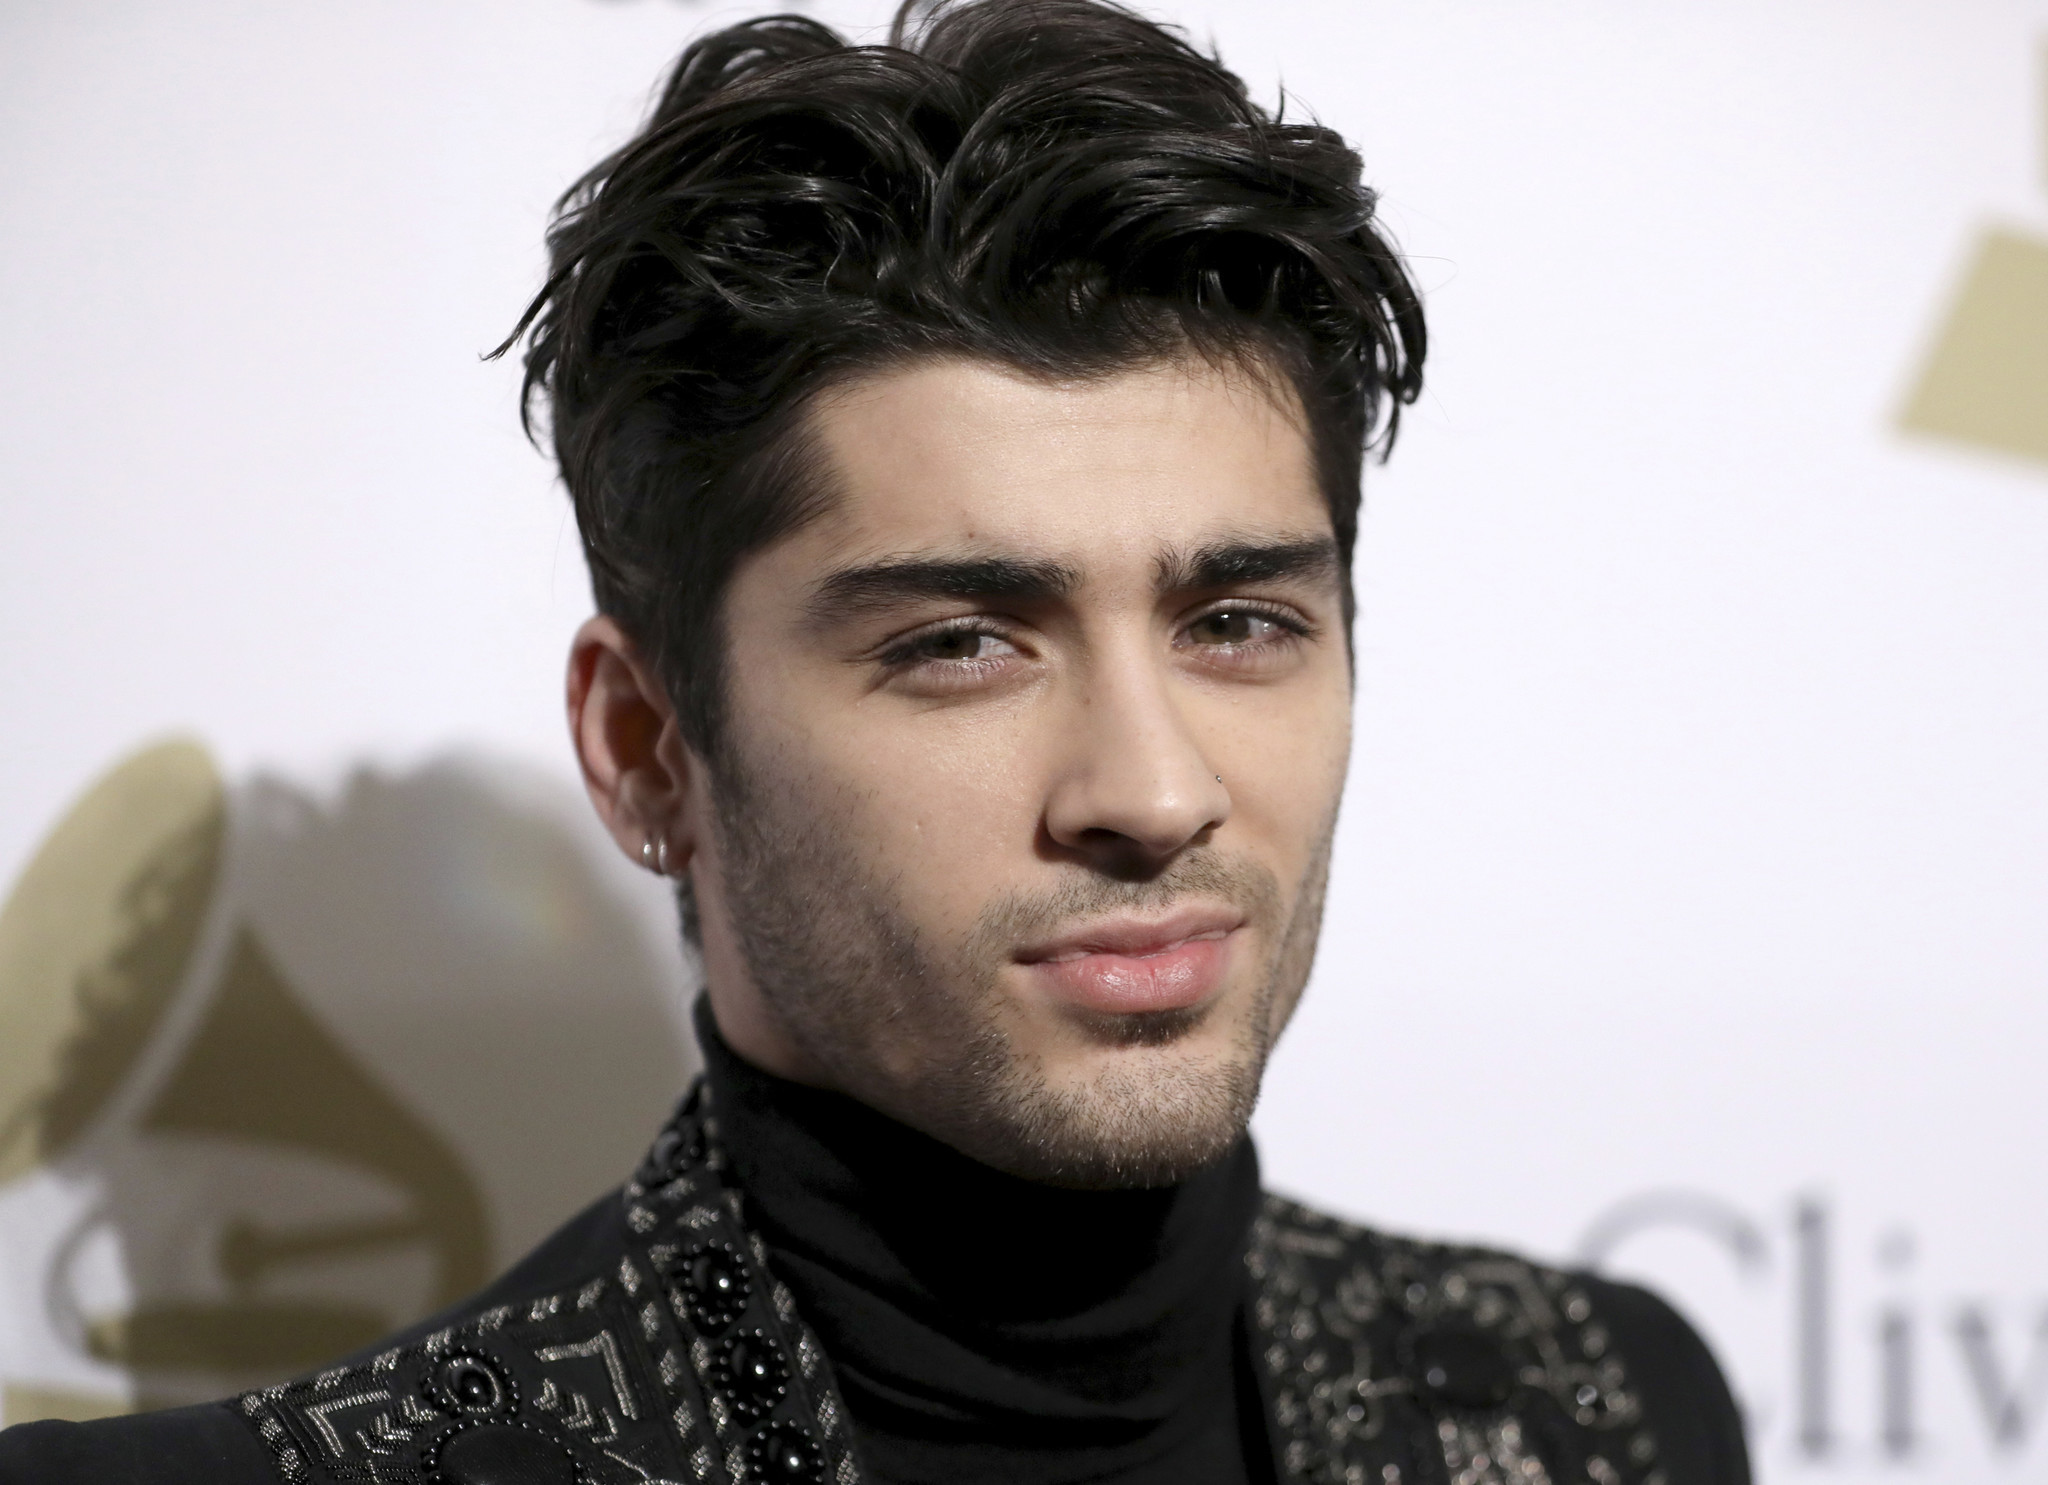 Zayn Malik talked about anxiety and eating disorders in a new interview with British newspaper the Sunday Times. (Rich Fury / Invision/Associated Press)